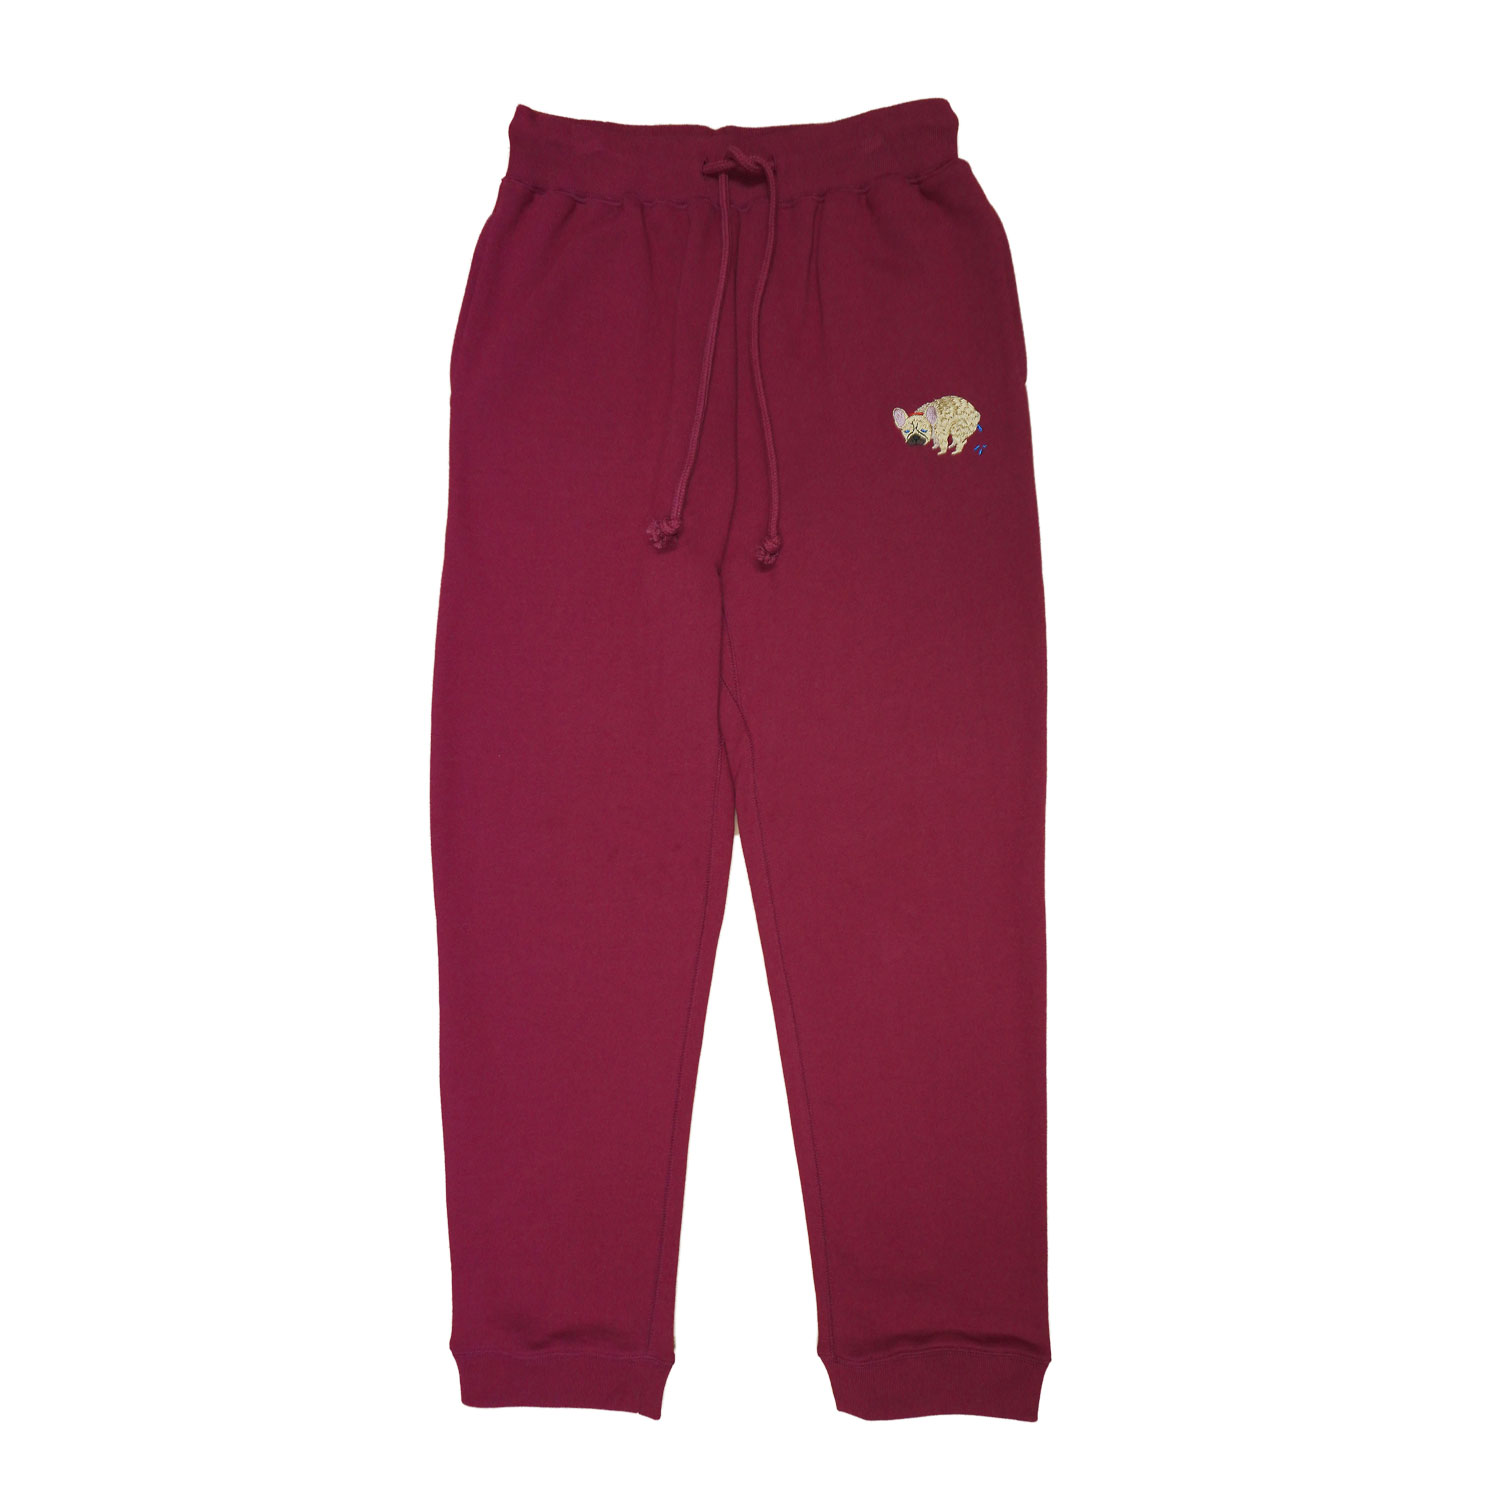 F/B POOPING SWEAT PANTS - FAWN